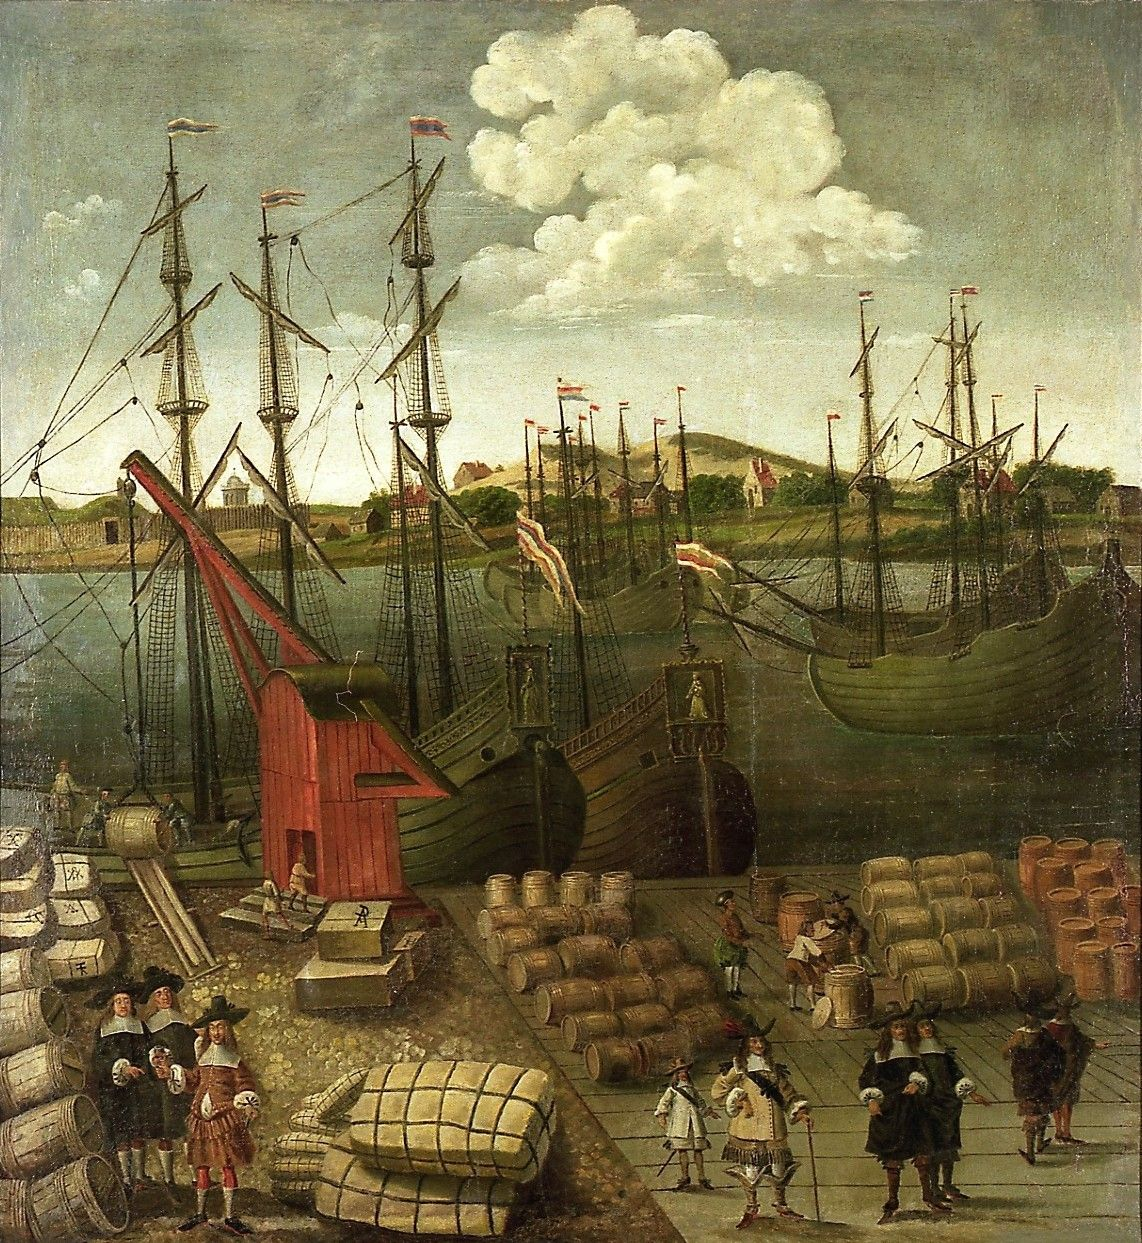 De haven van Riga omstreeks 1650. Op de kade balen hennep en vaten met zout, haring en wijn. (Collectie Museum of the History of Riga and Navigation, Latvia)